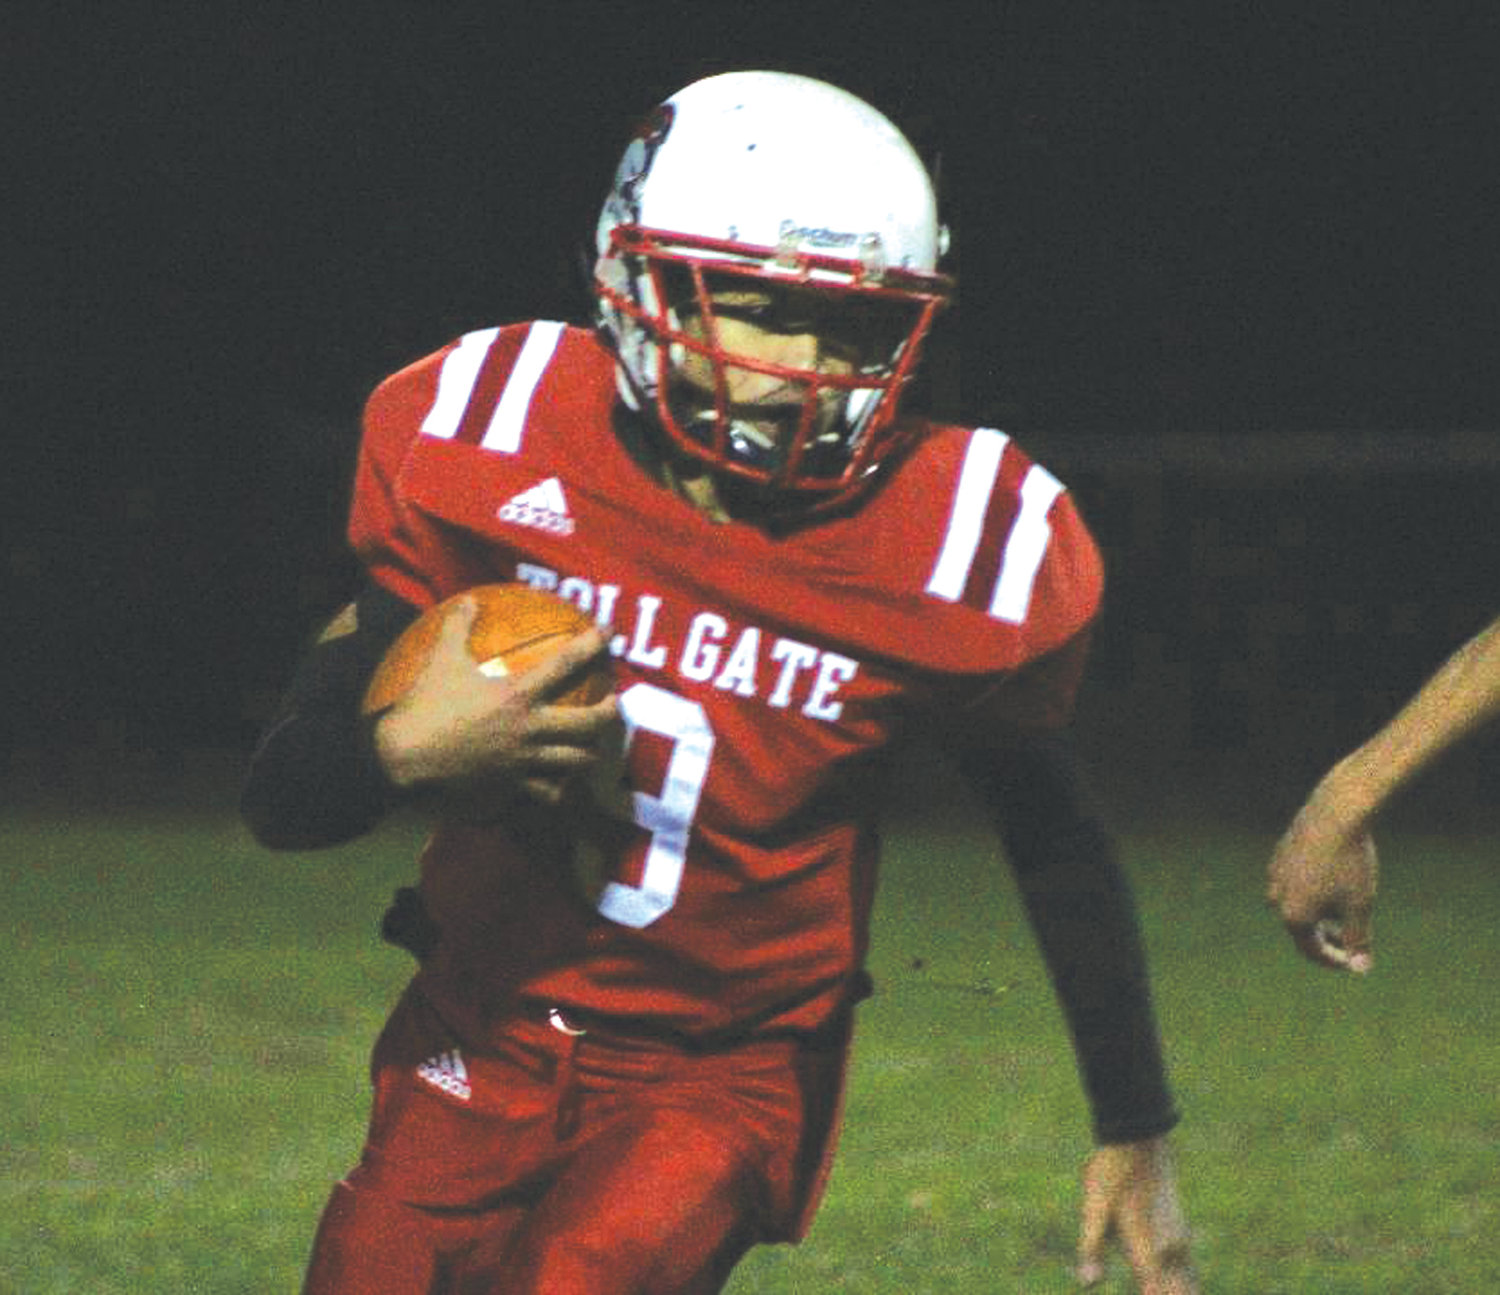 GETTING THE WIN: Toll Gate's Elijah Jhaden Aguilar picks up some yards in the fourth quarter of Toll Gate's victory over Davies last week at Vets.